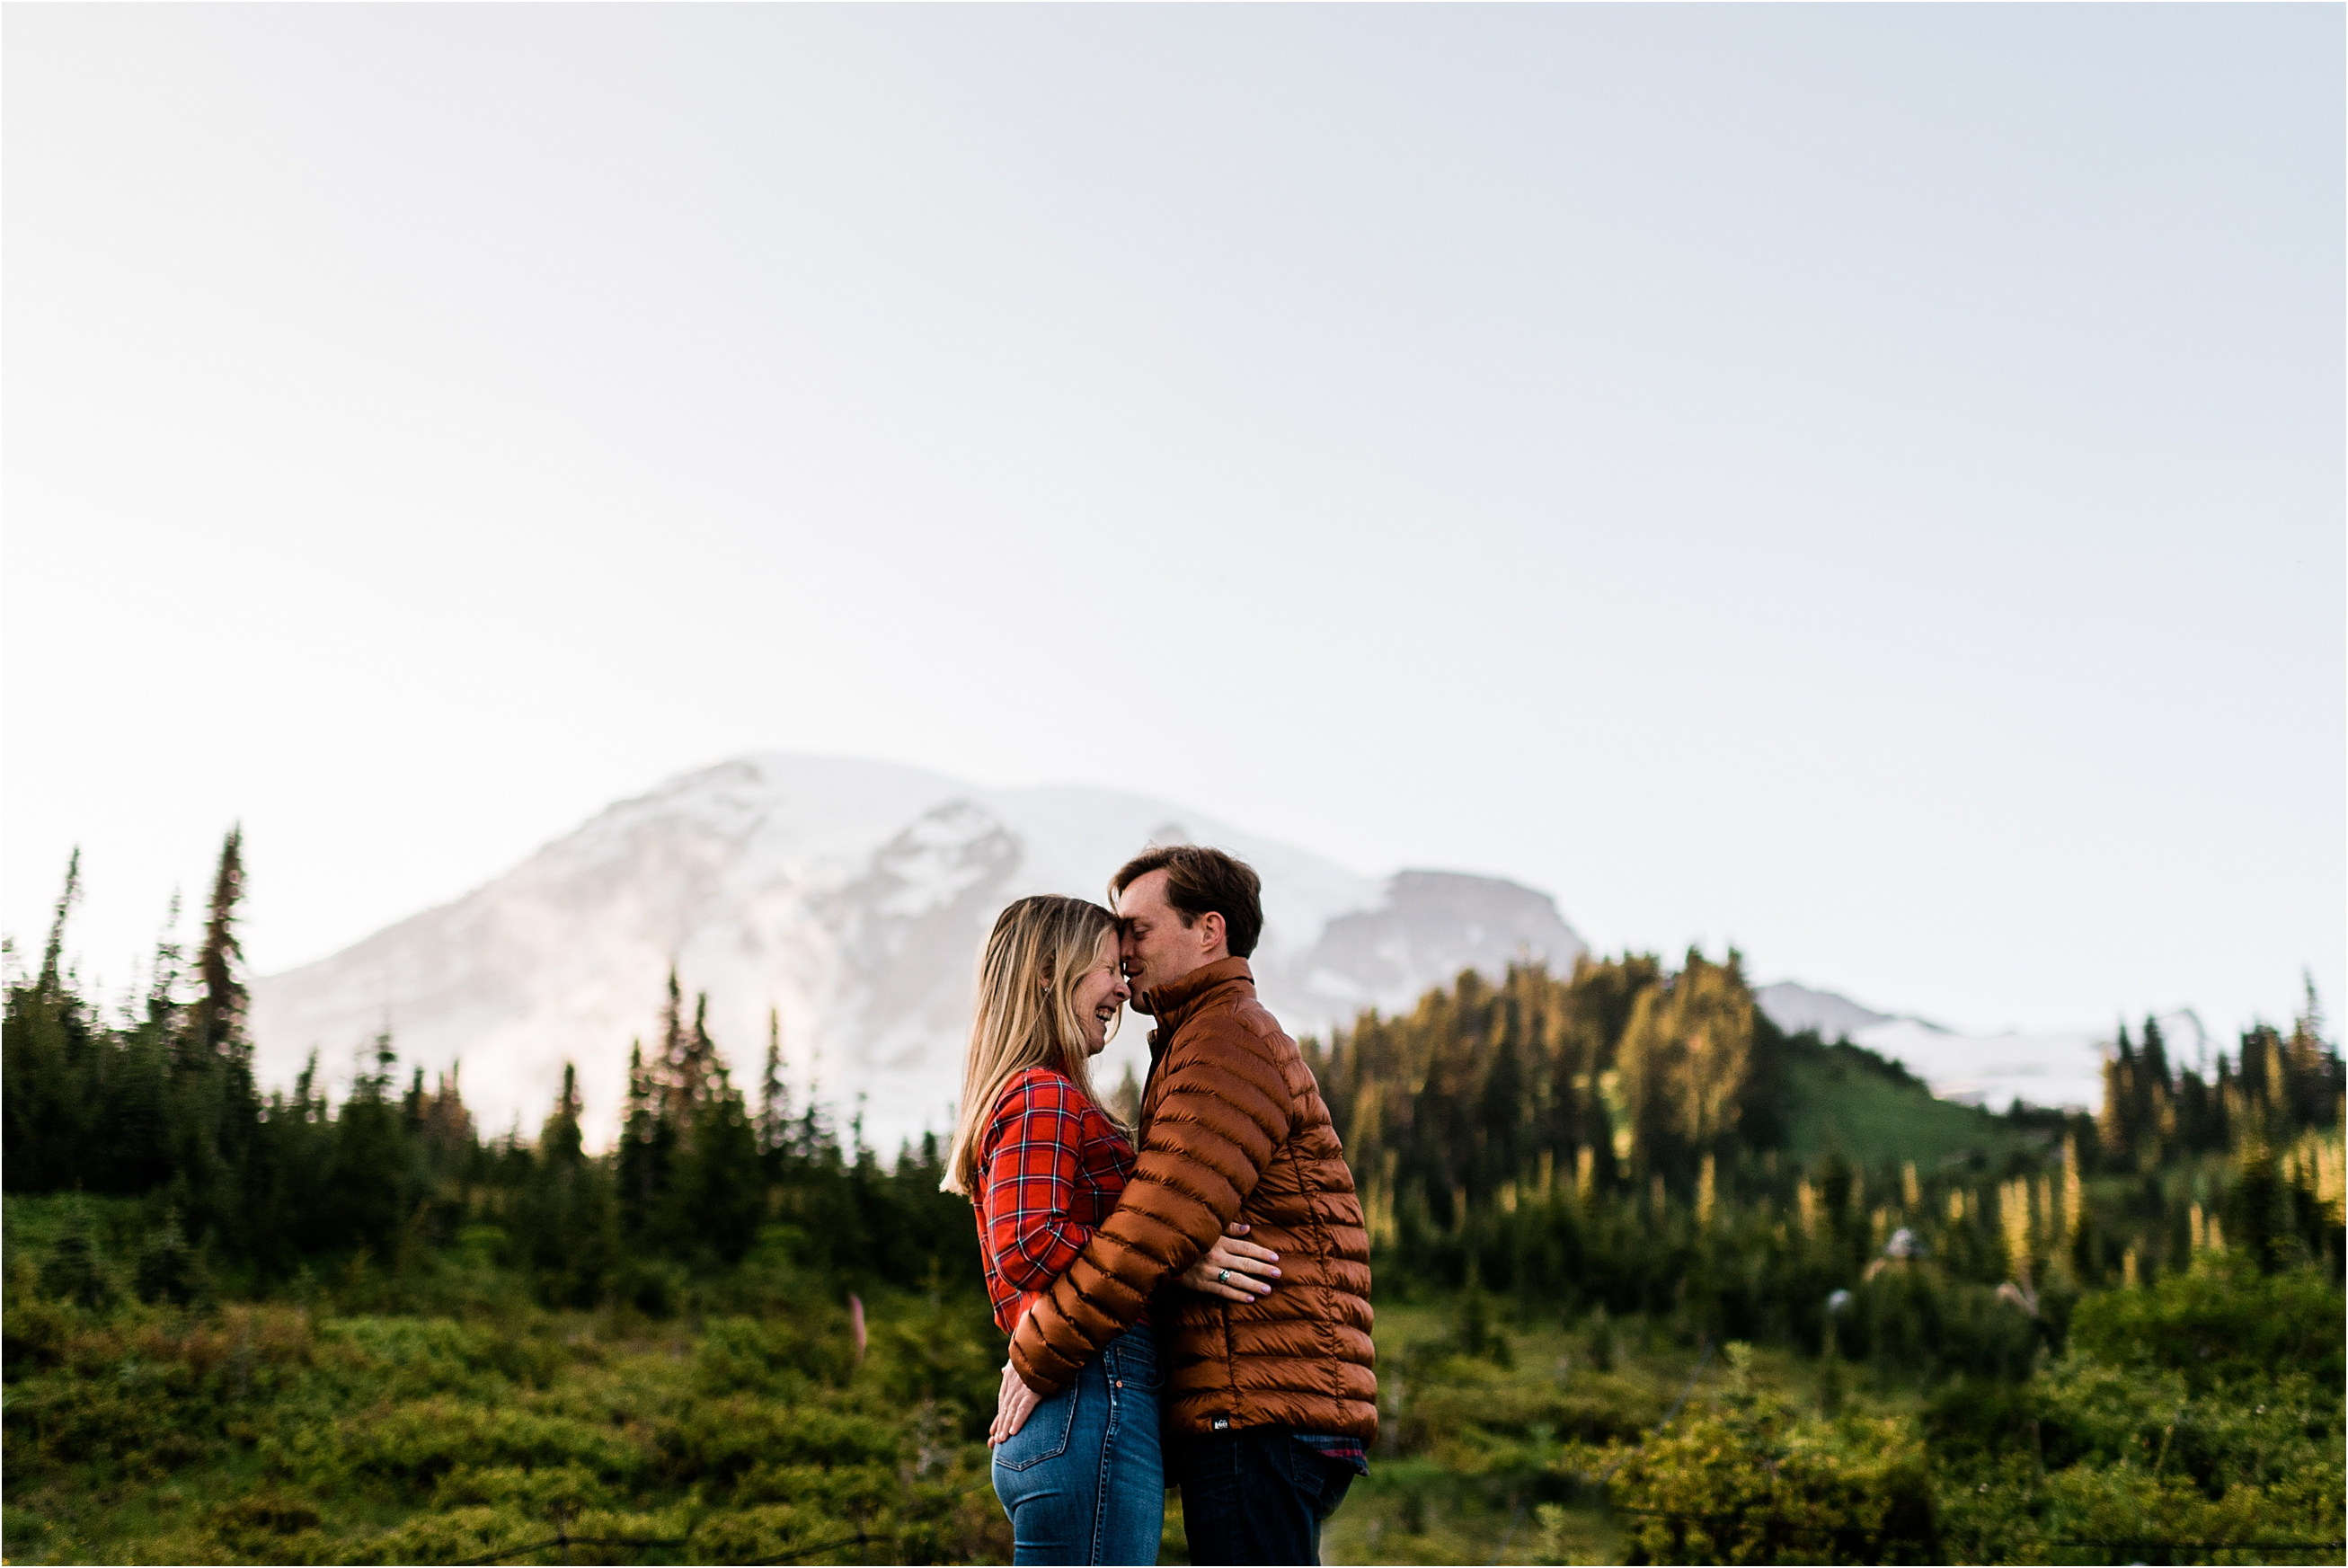 Kimi & Derek's backpacking engagement session at Mount Rainier, with Rainer at sunset in the background. Image by Forthright Photo.